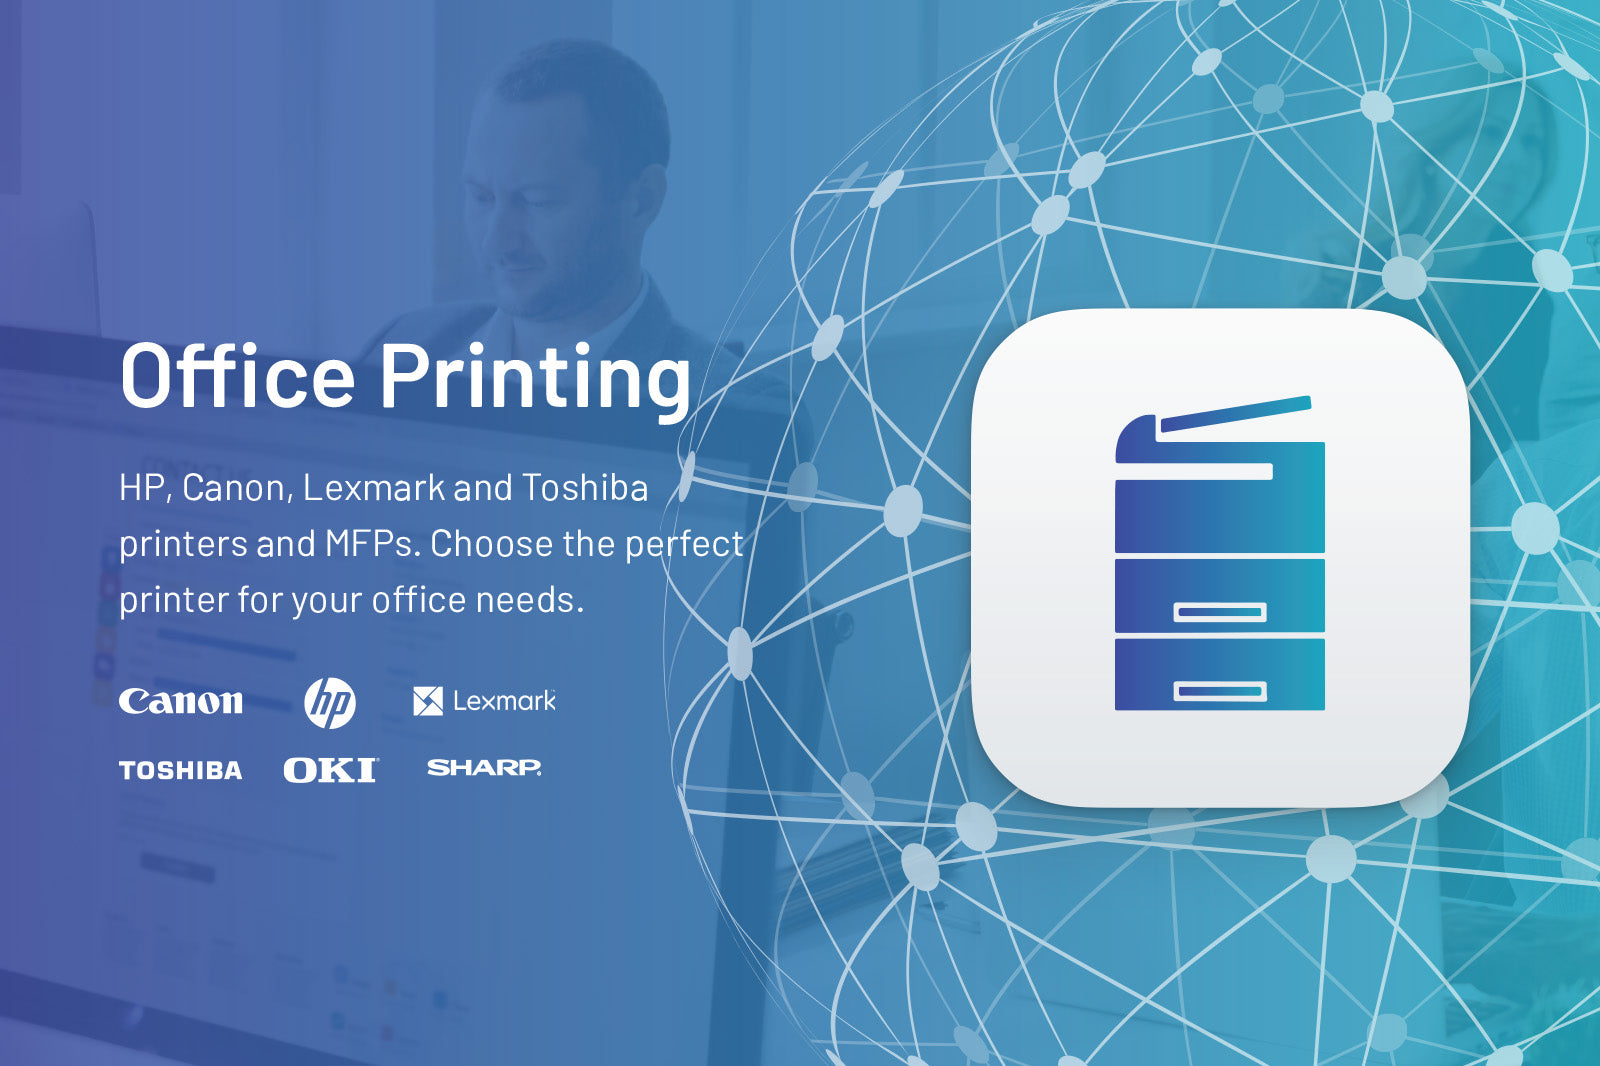 Office Printing. HP, Canon, Lexmark and Toshiba printers and MFPs. Choose the perfect printer for your office needs.